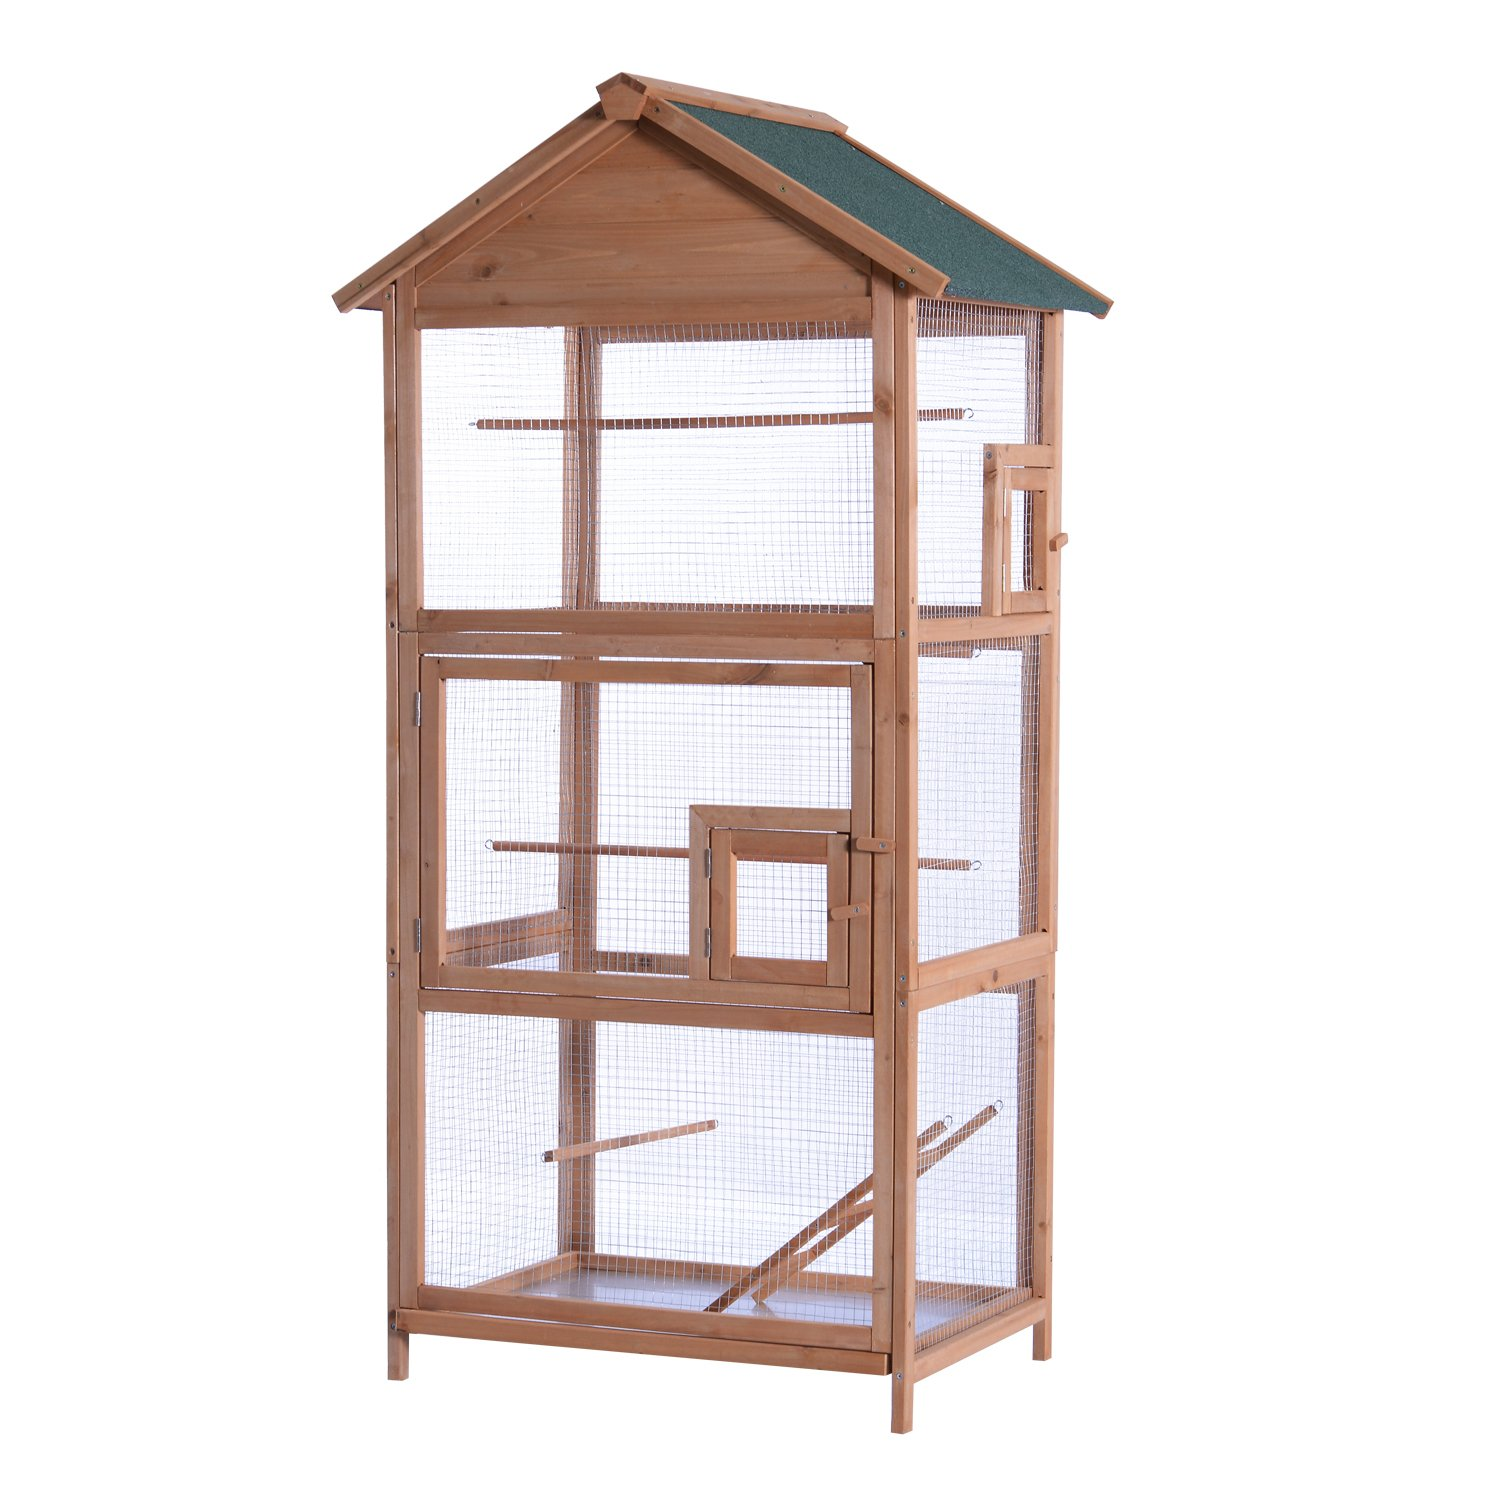 MCombo 70inch Outdoor Aviary Bird Cage Wood Vertical Play House Pet Parrot Cages with Stand 0011 by MCombo